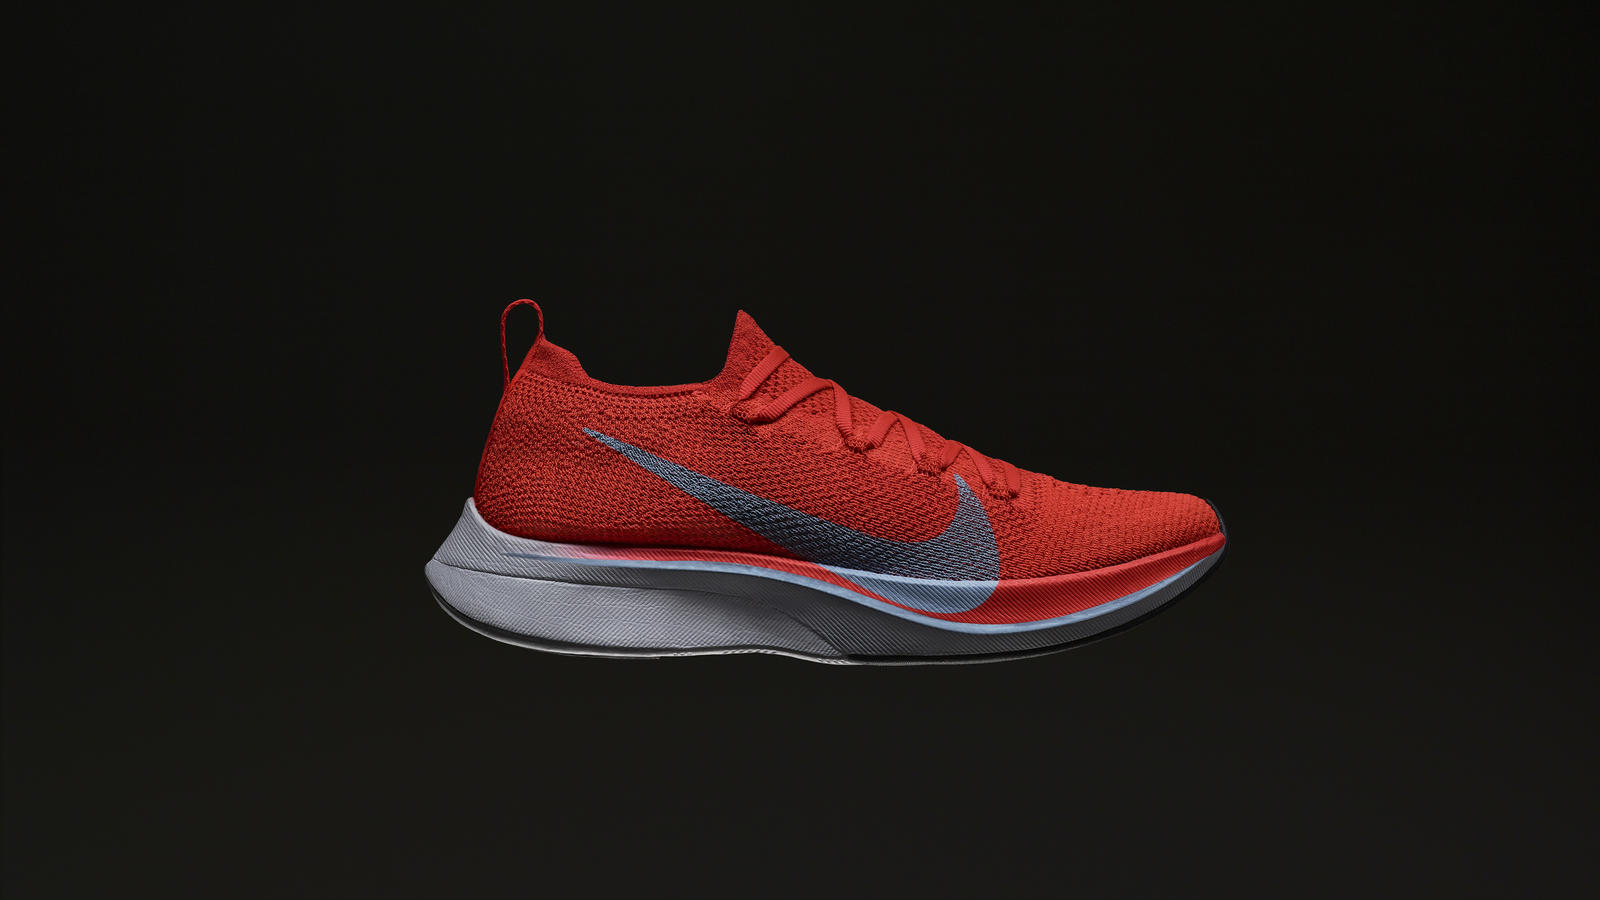 lowest price c3b0d 54fc5 How to Get the Nike Zoom Vaporfly 4% 1